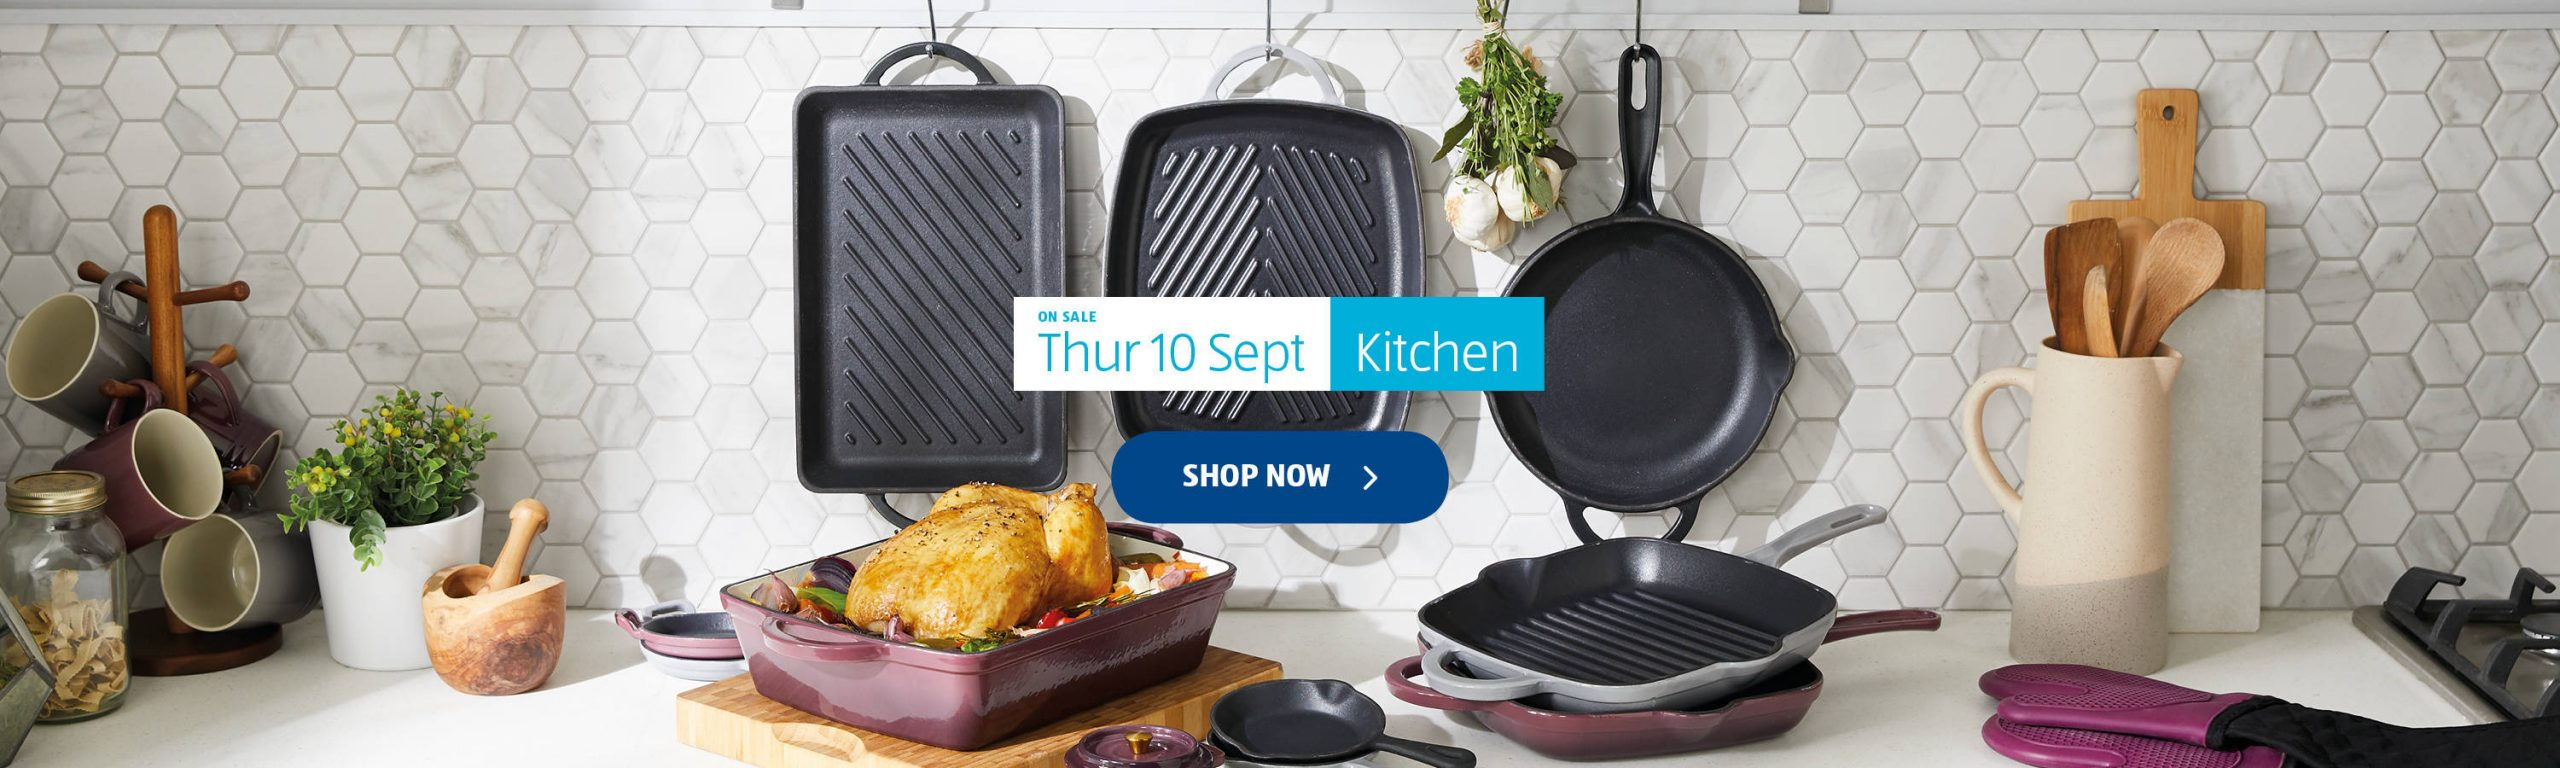 ALDI Thursday Offers 10th September 2020 Special Buy Kitchen